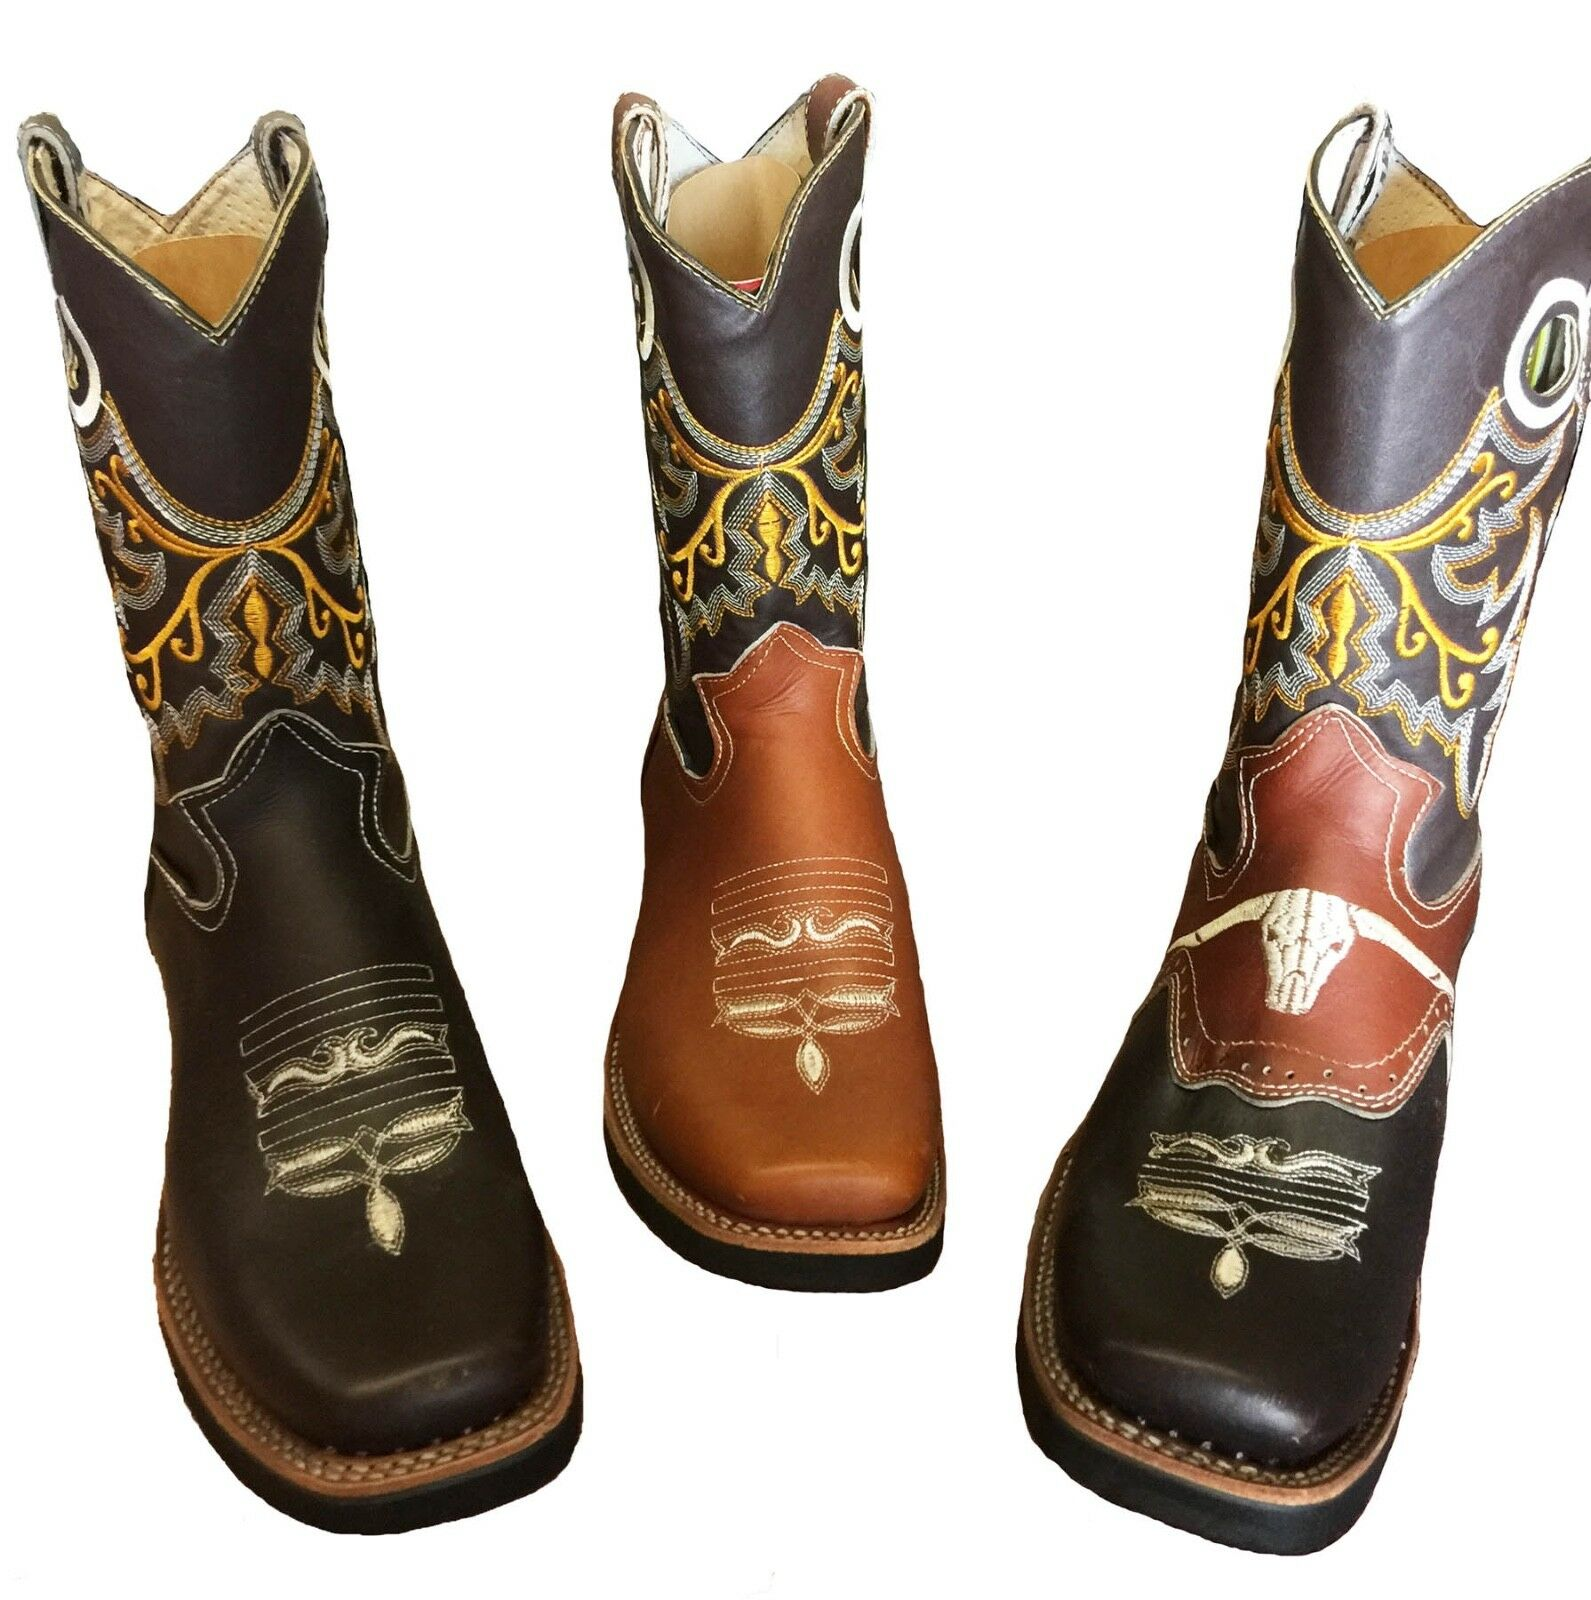 MEN'S RODEO COWBOY BOOTS GENUINE LEATHER WESTERN SQUARE TOE BOTAS-CARR 121